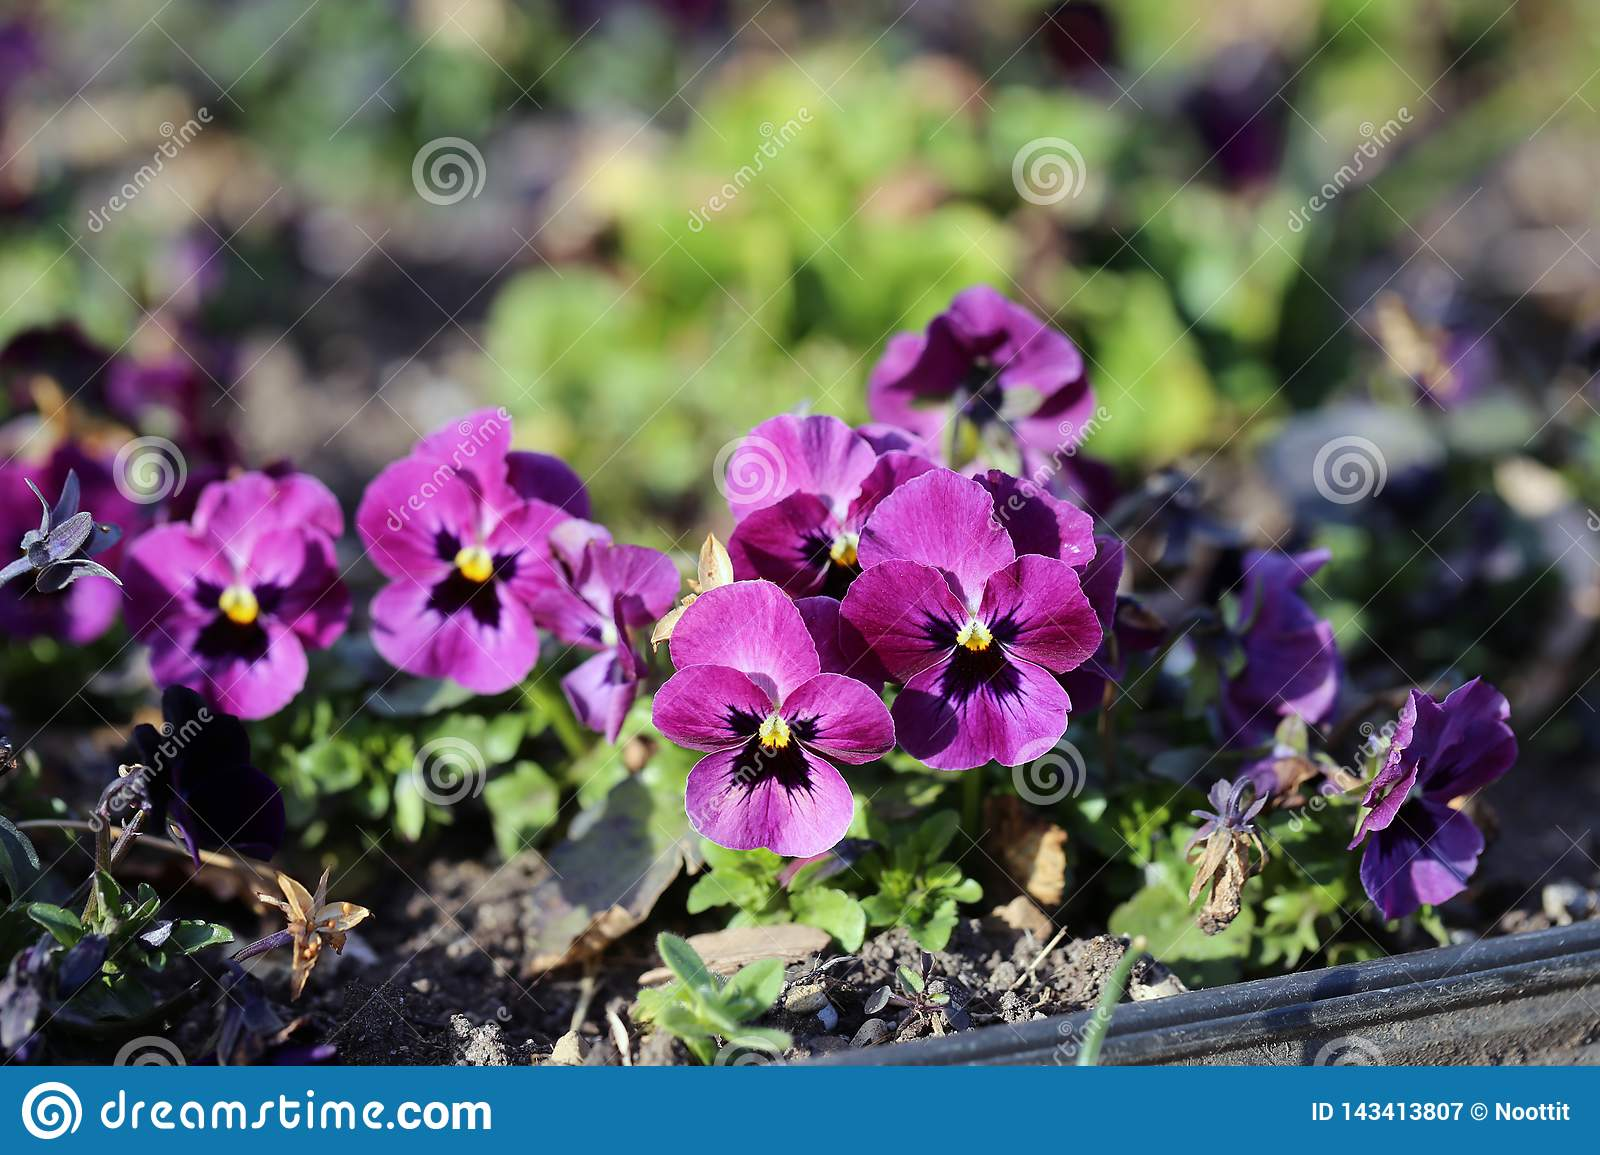 Small Purple Pansy Flowers Blooming